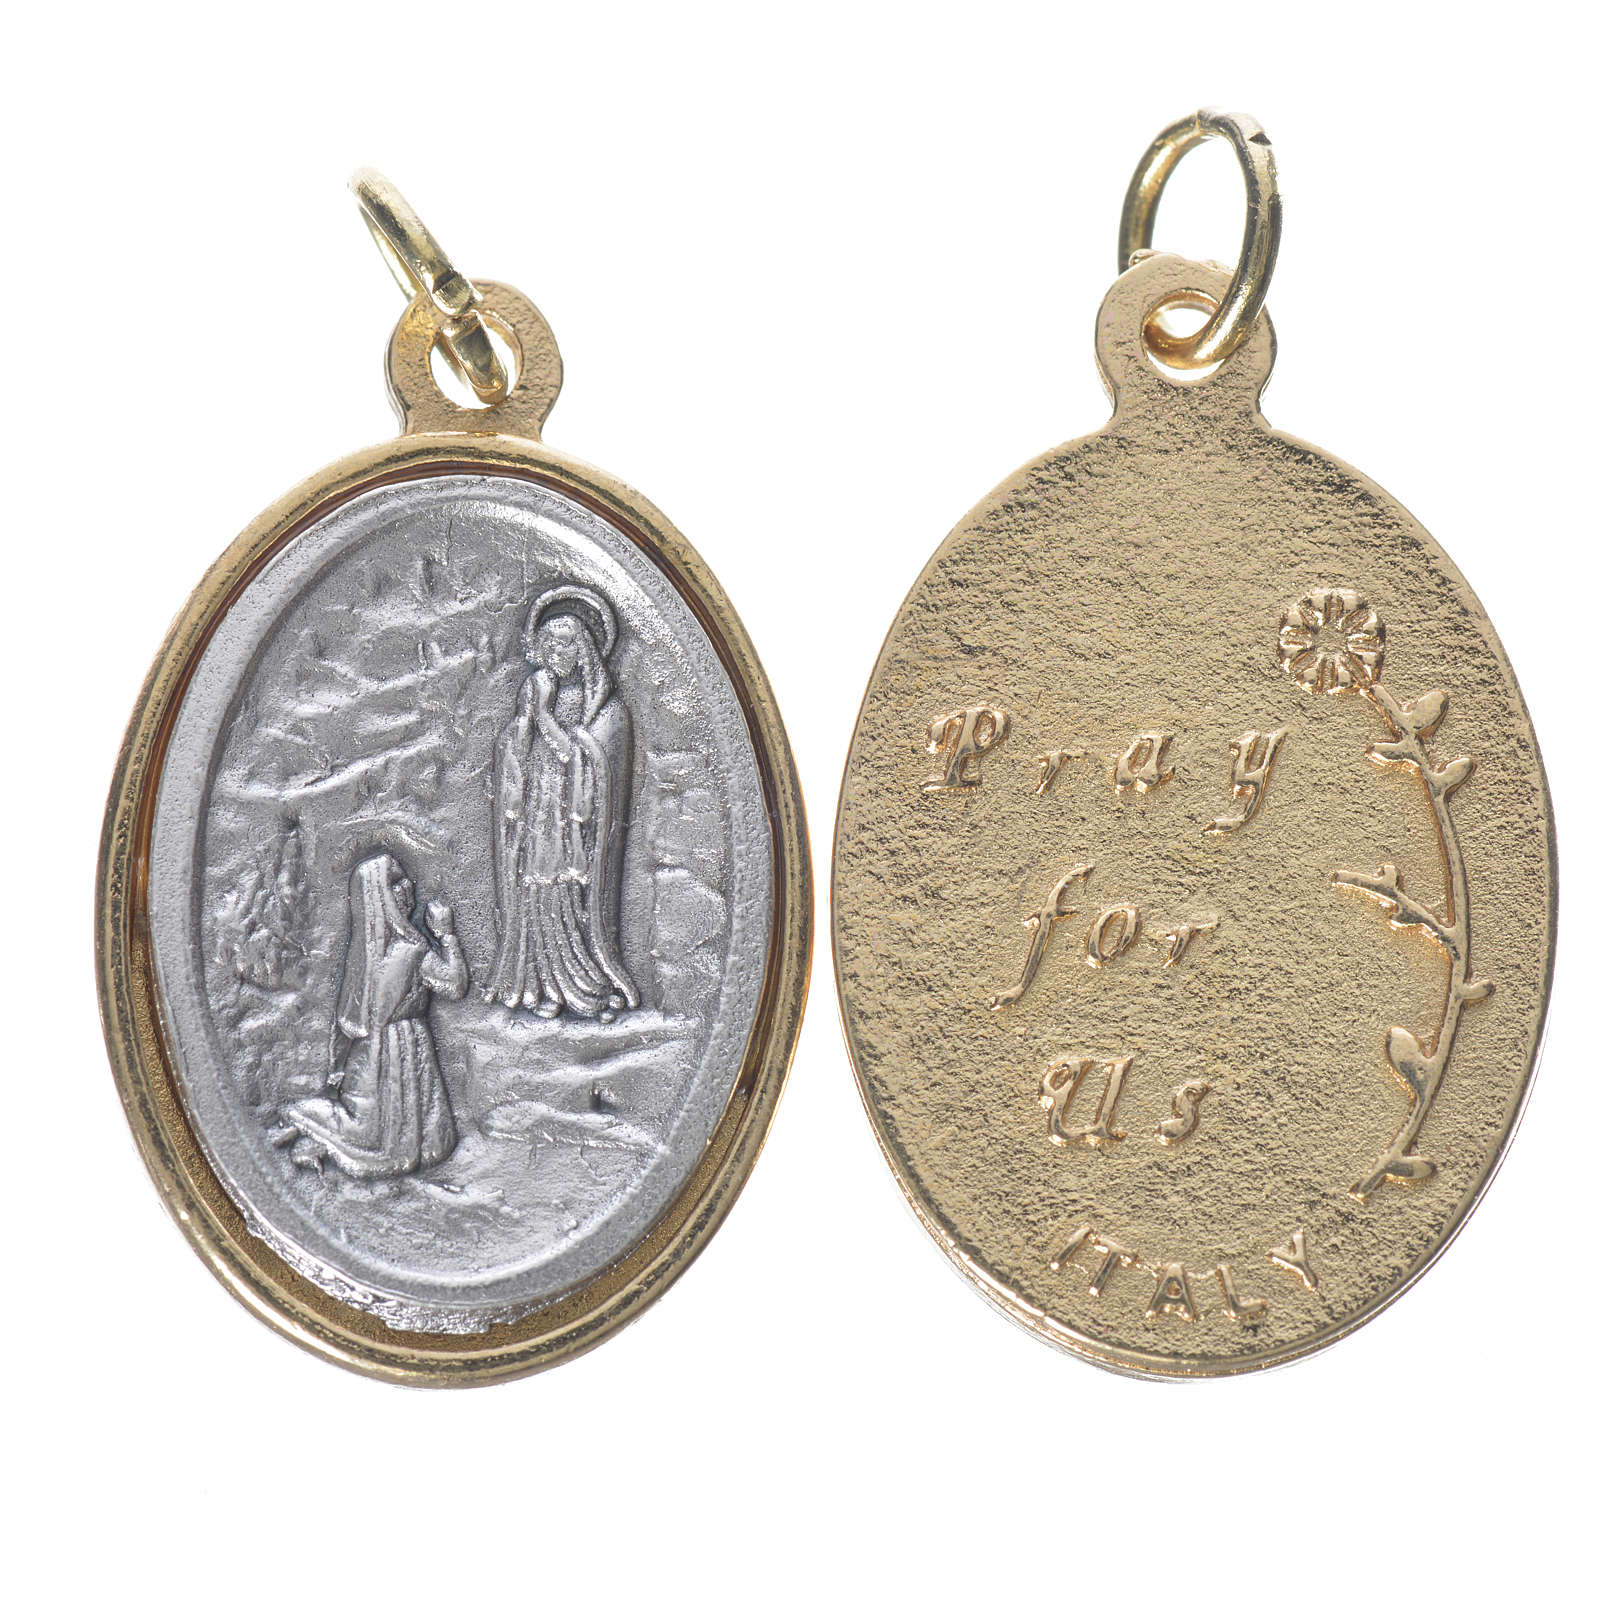 Lourdes Medal in silver and golden metal 2.5cm 4